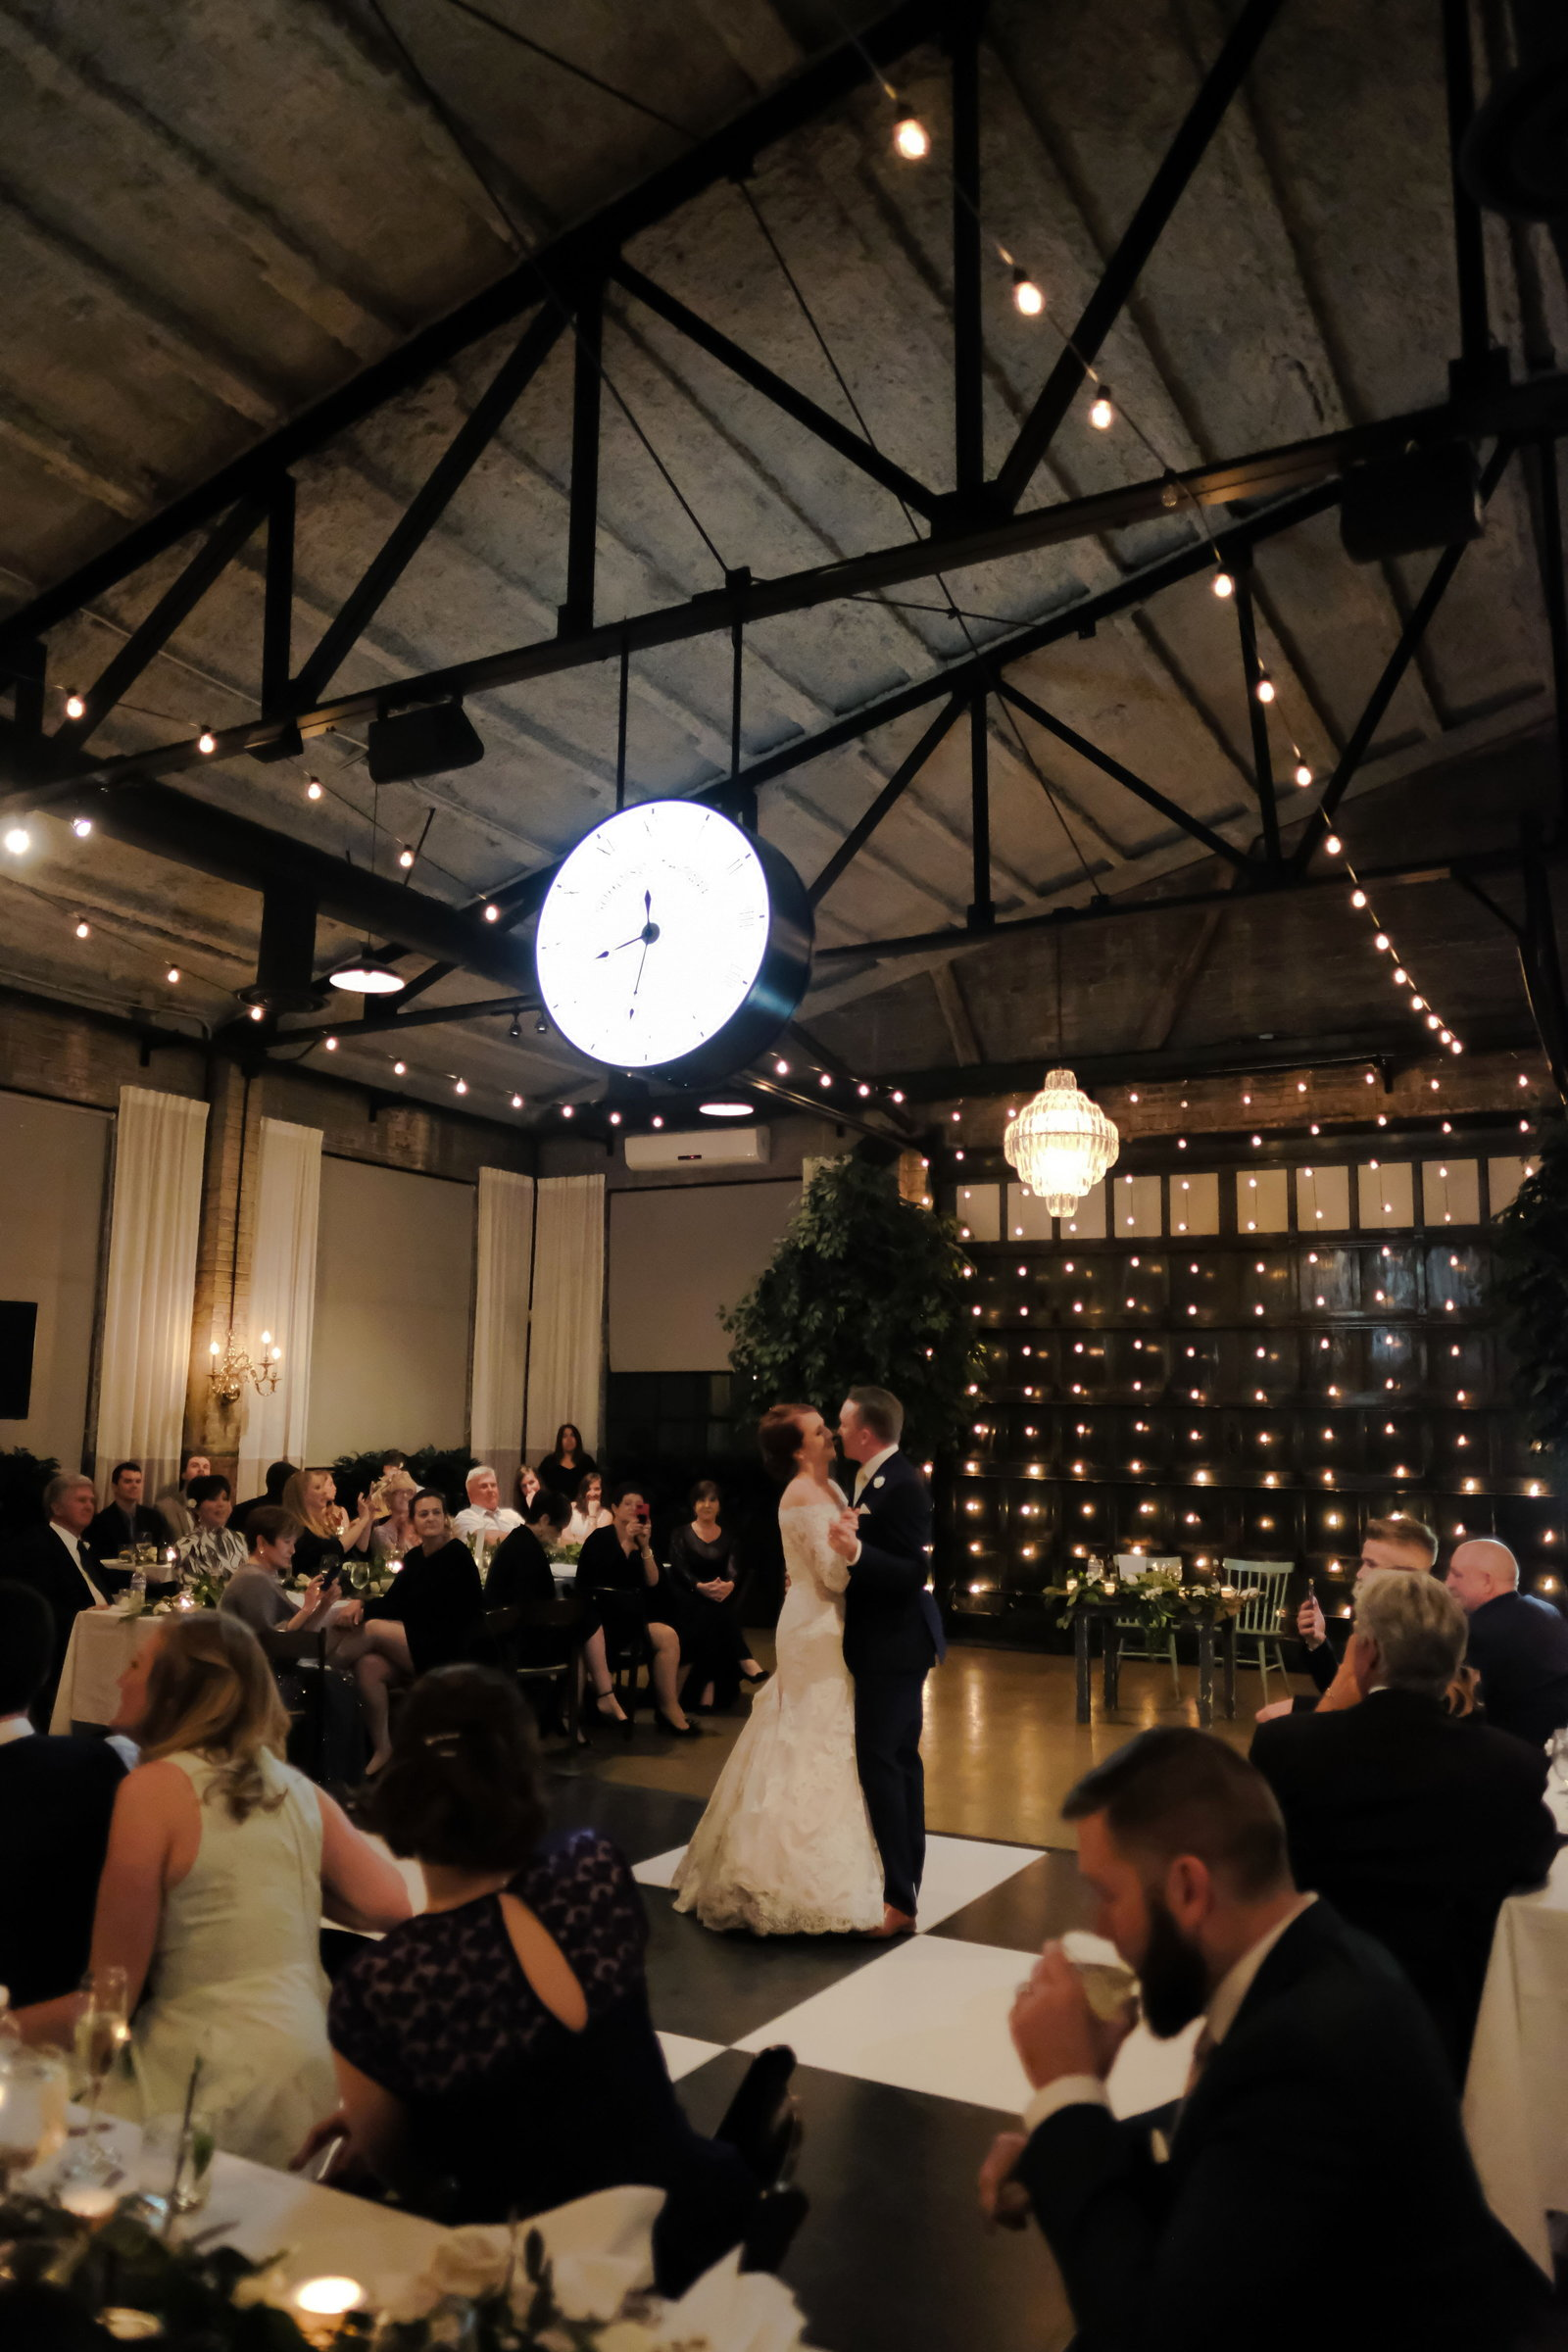 Bobbi Brinkman Photography, Soho South Cafe Wedding, Thos + Kathleen